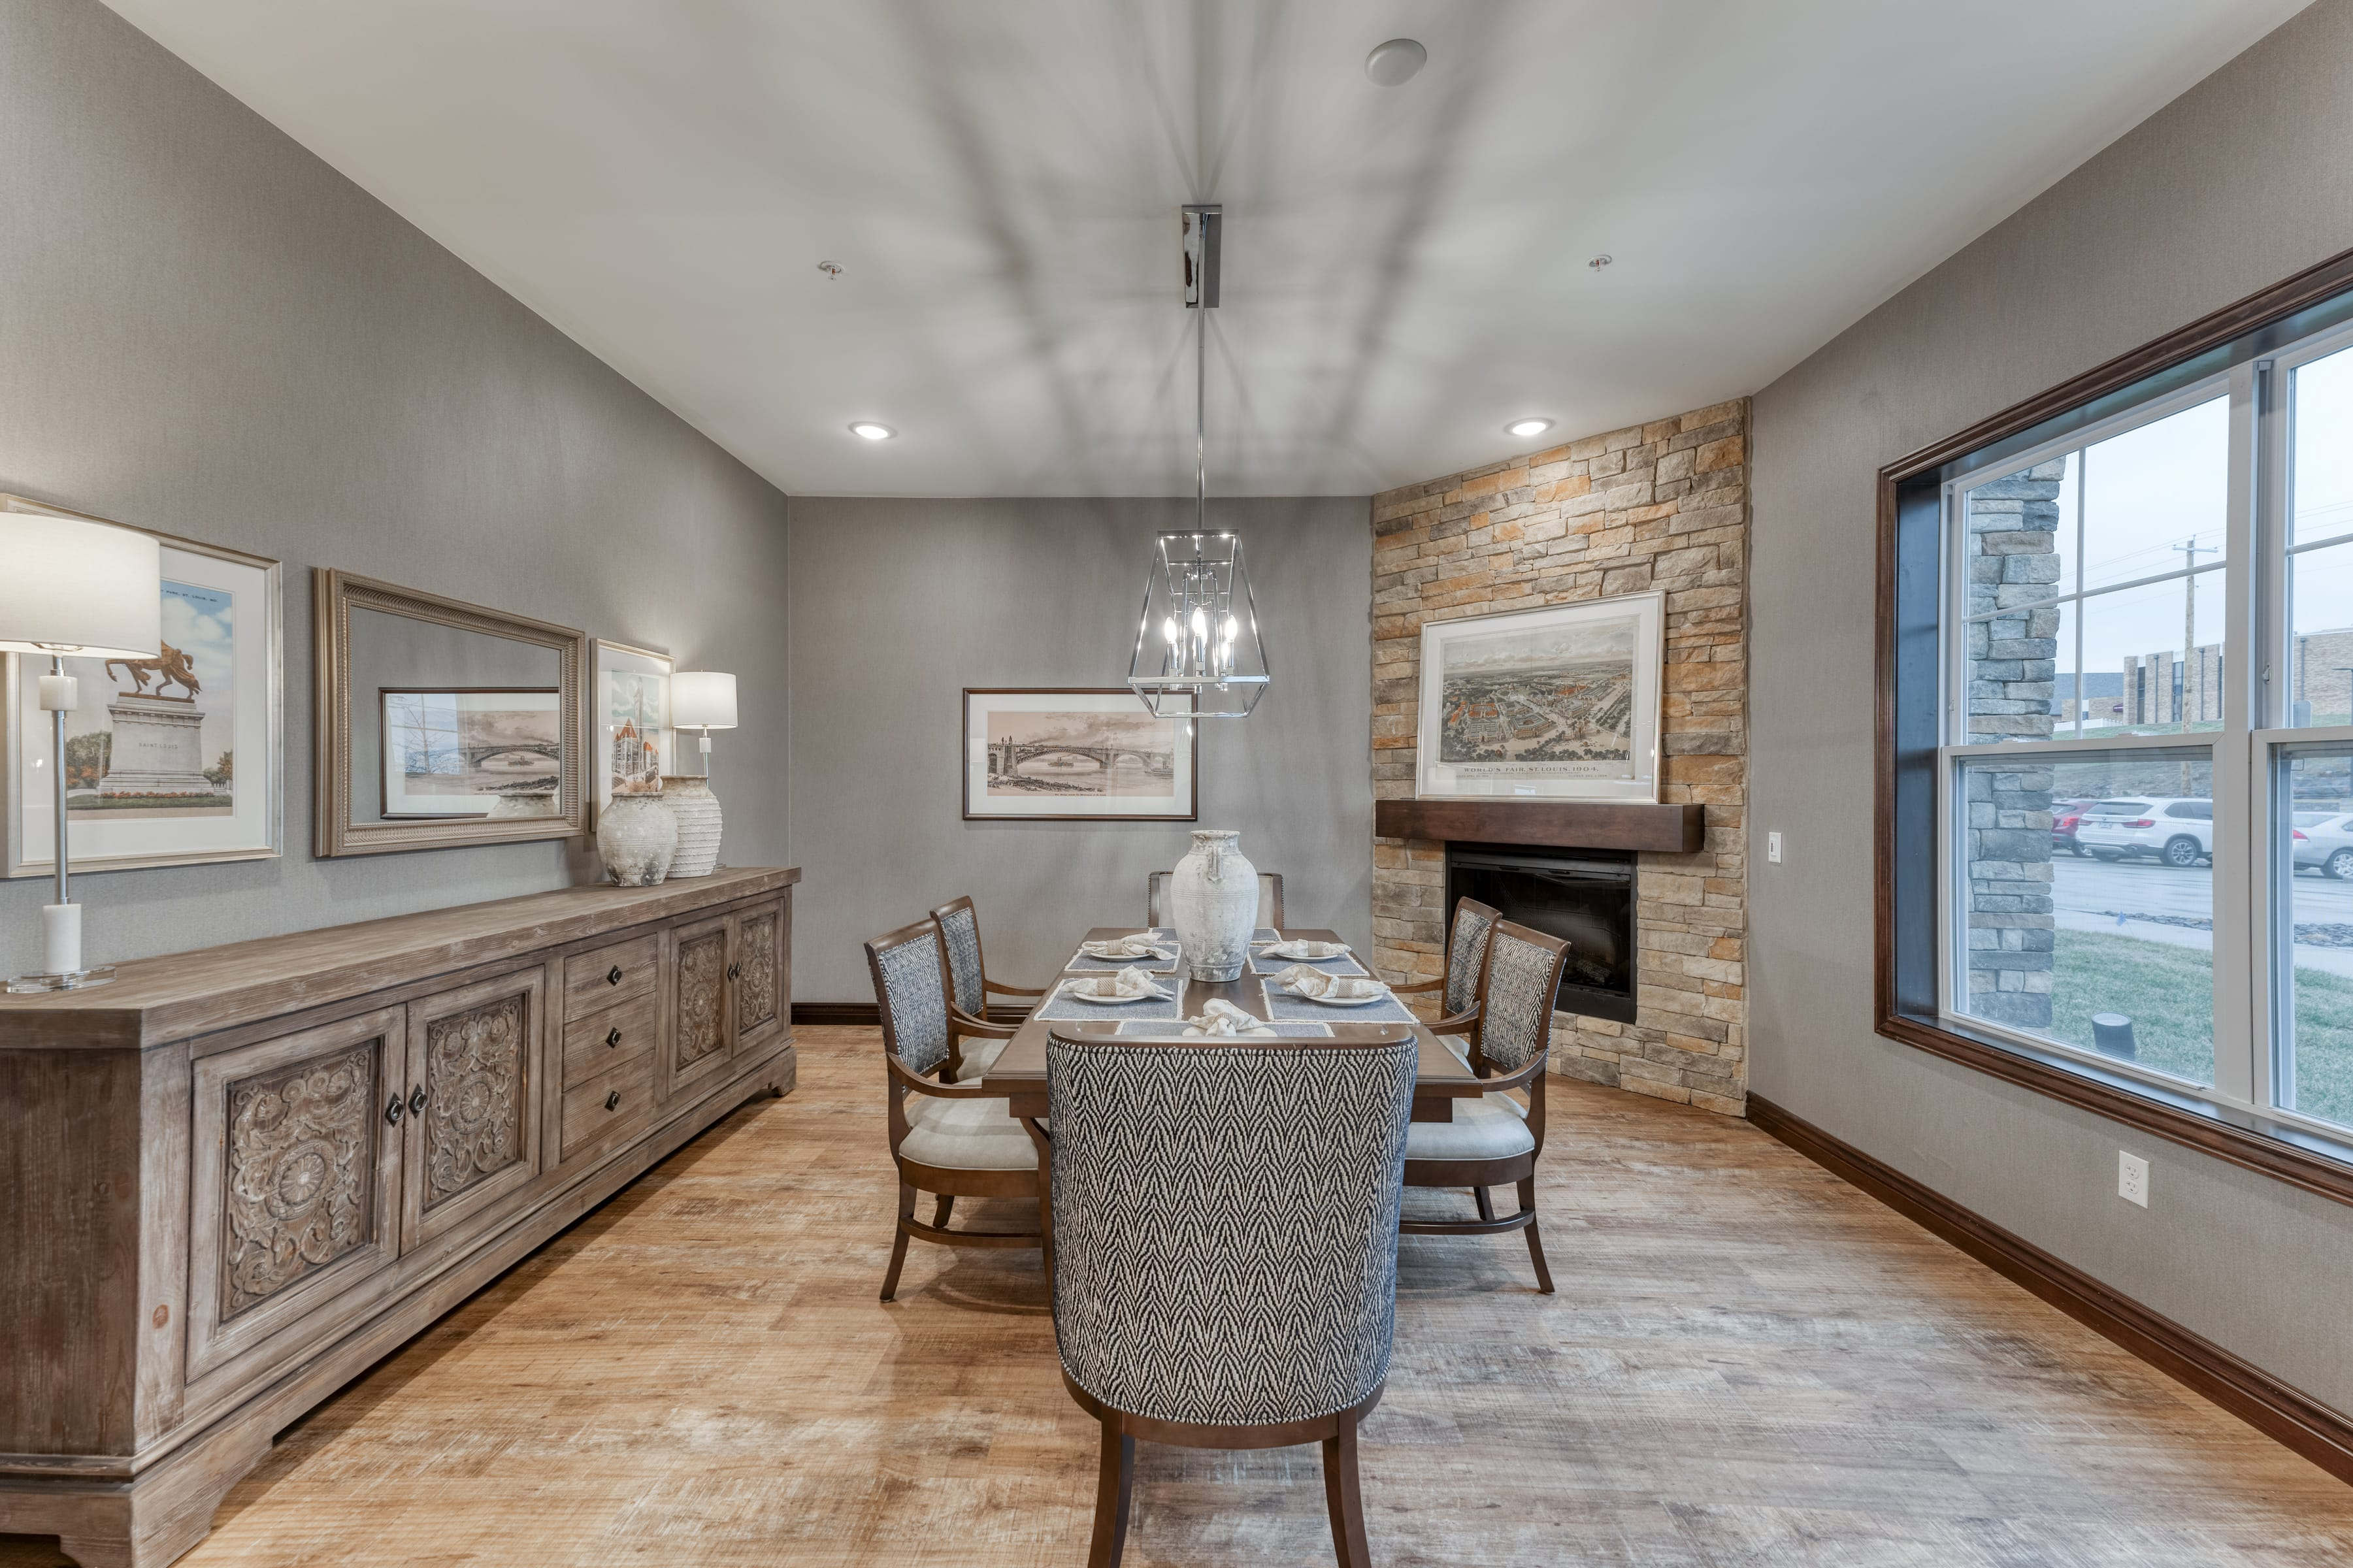 Unique lighting fixtures provide light and ambiance to this dining space